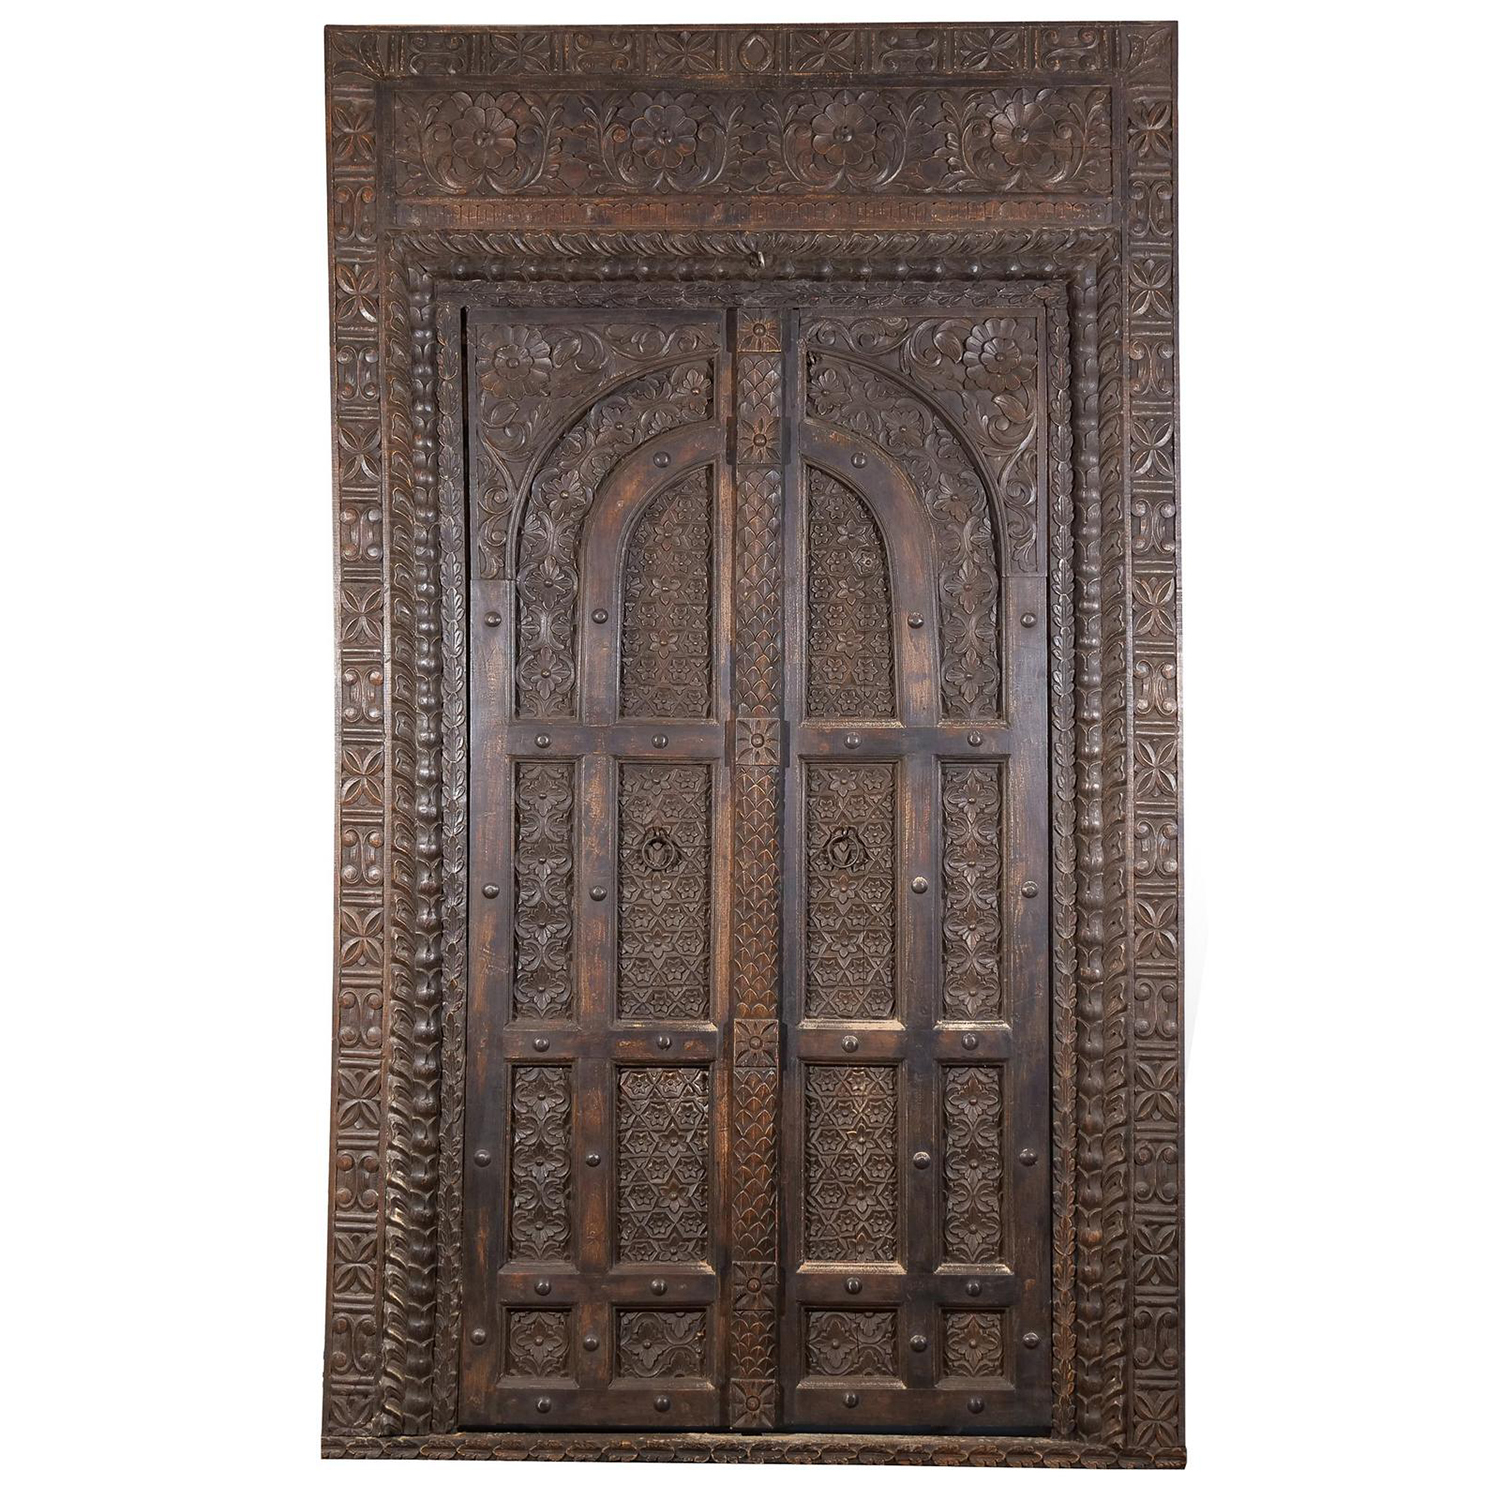 18th Century Italian Rococo Carved Frieze Panel – Oakwood Door